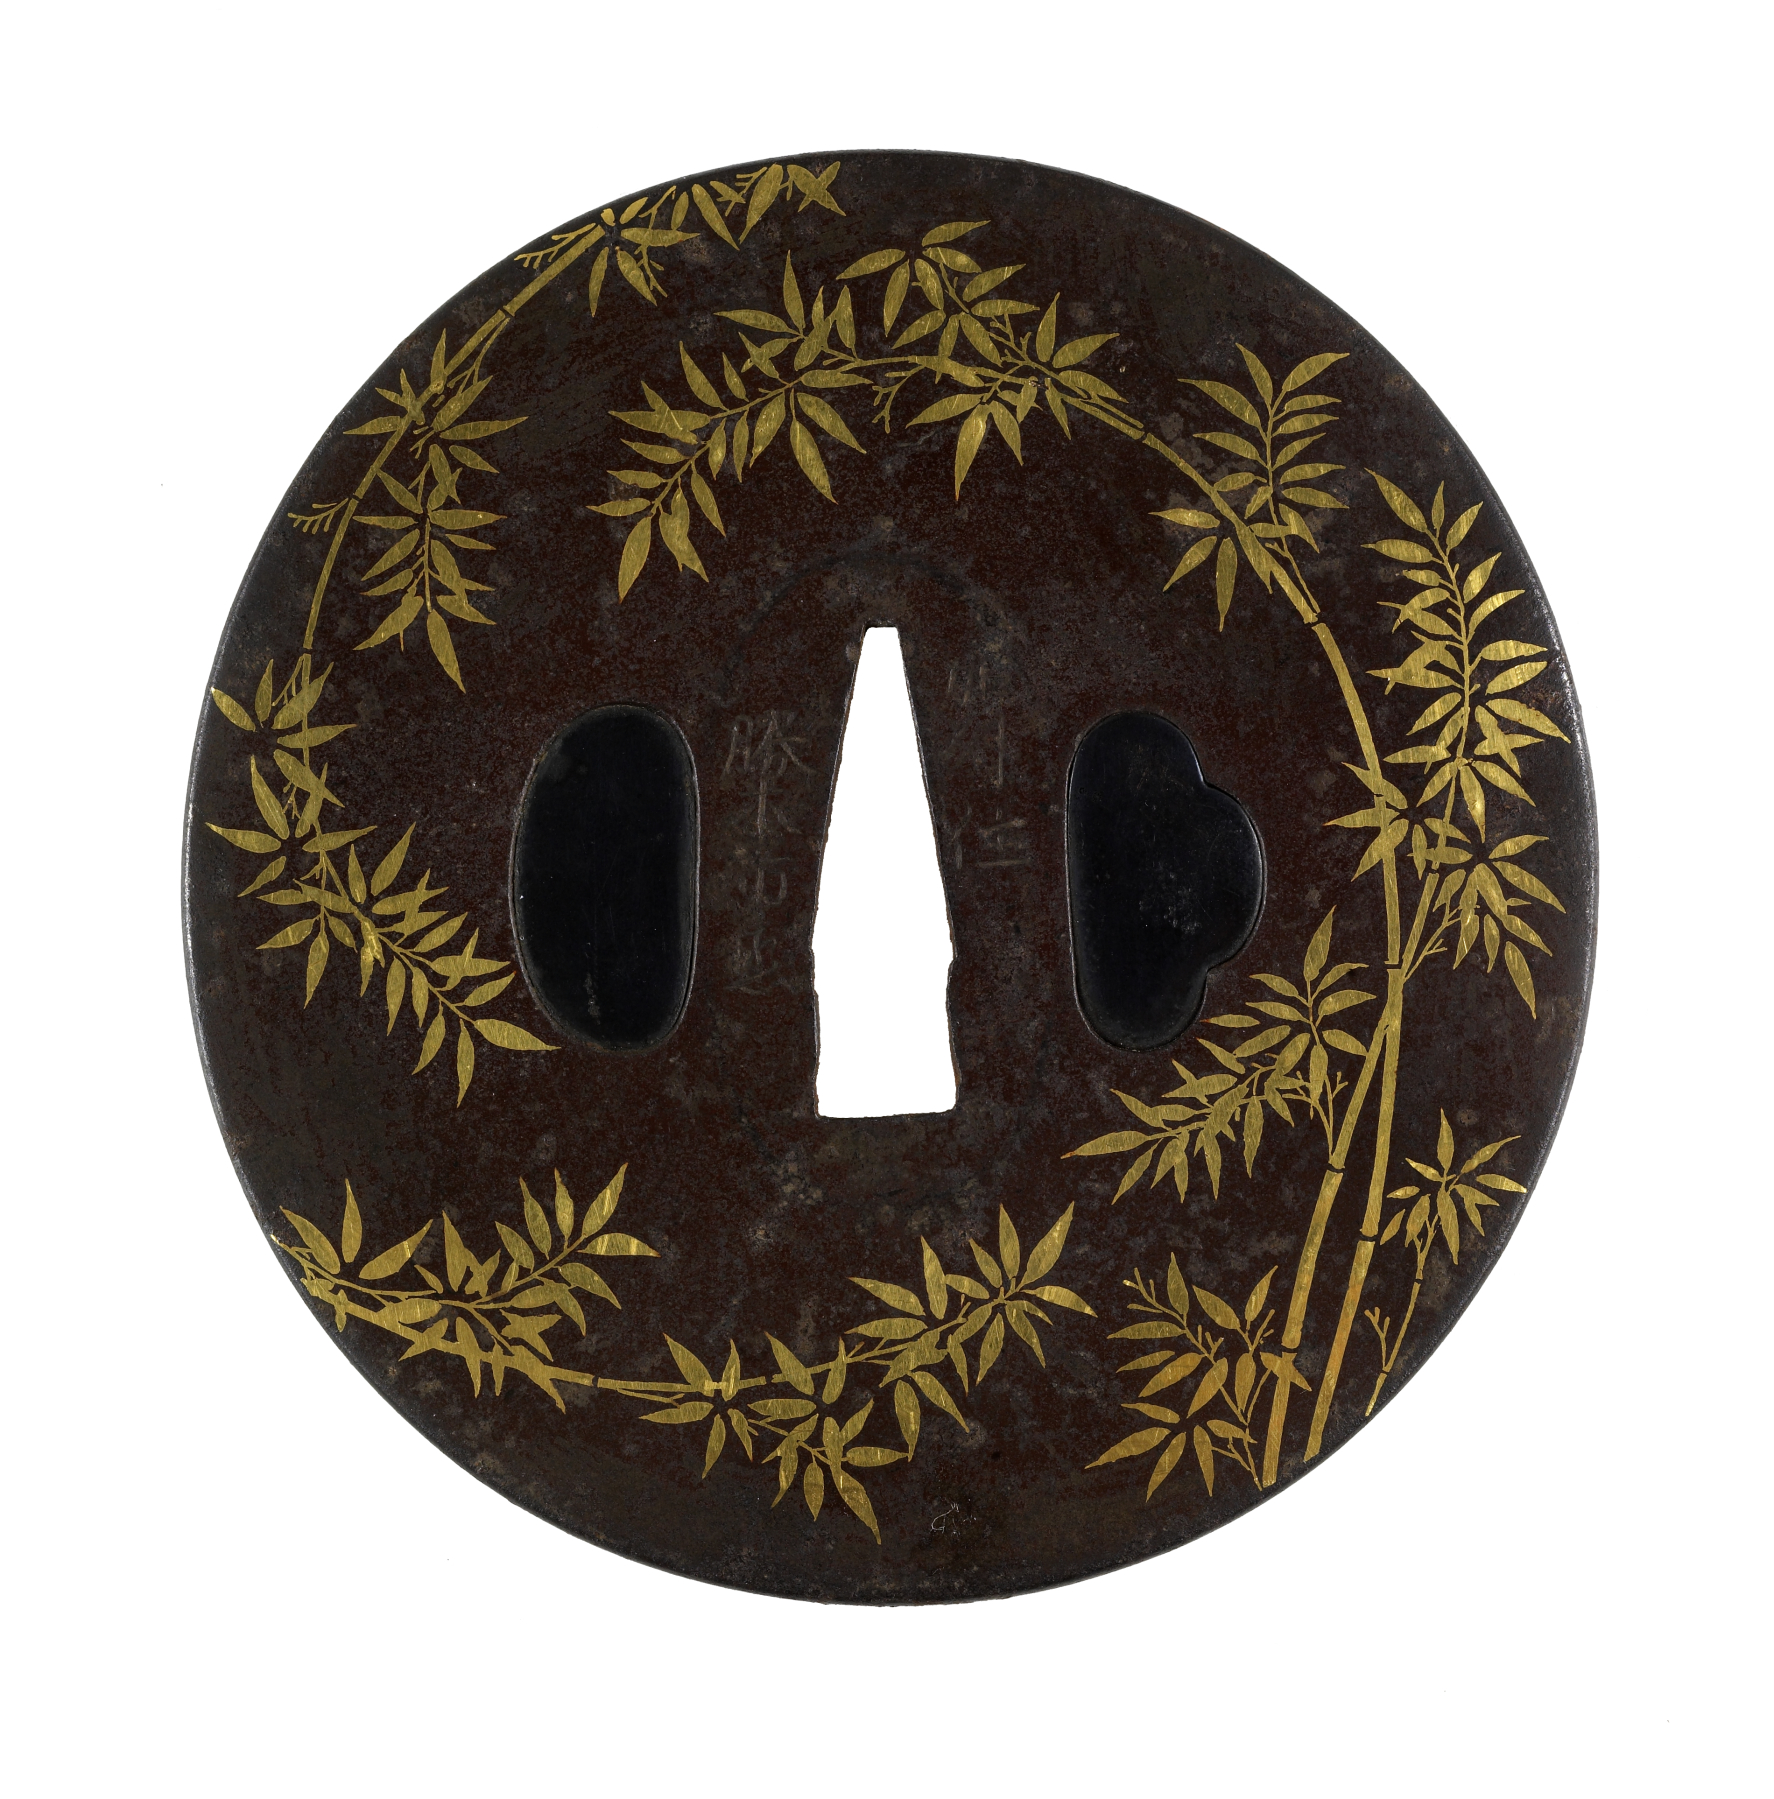 dating tsuba Tsuba section with pictures of the tsuba displays it is accompanied by an honami origami dated 1780 and a certificate with the signature.